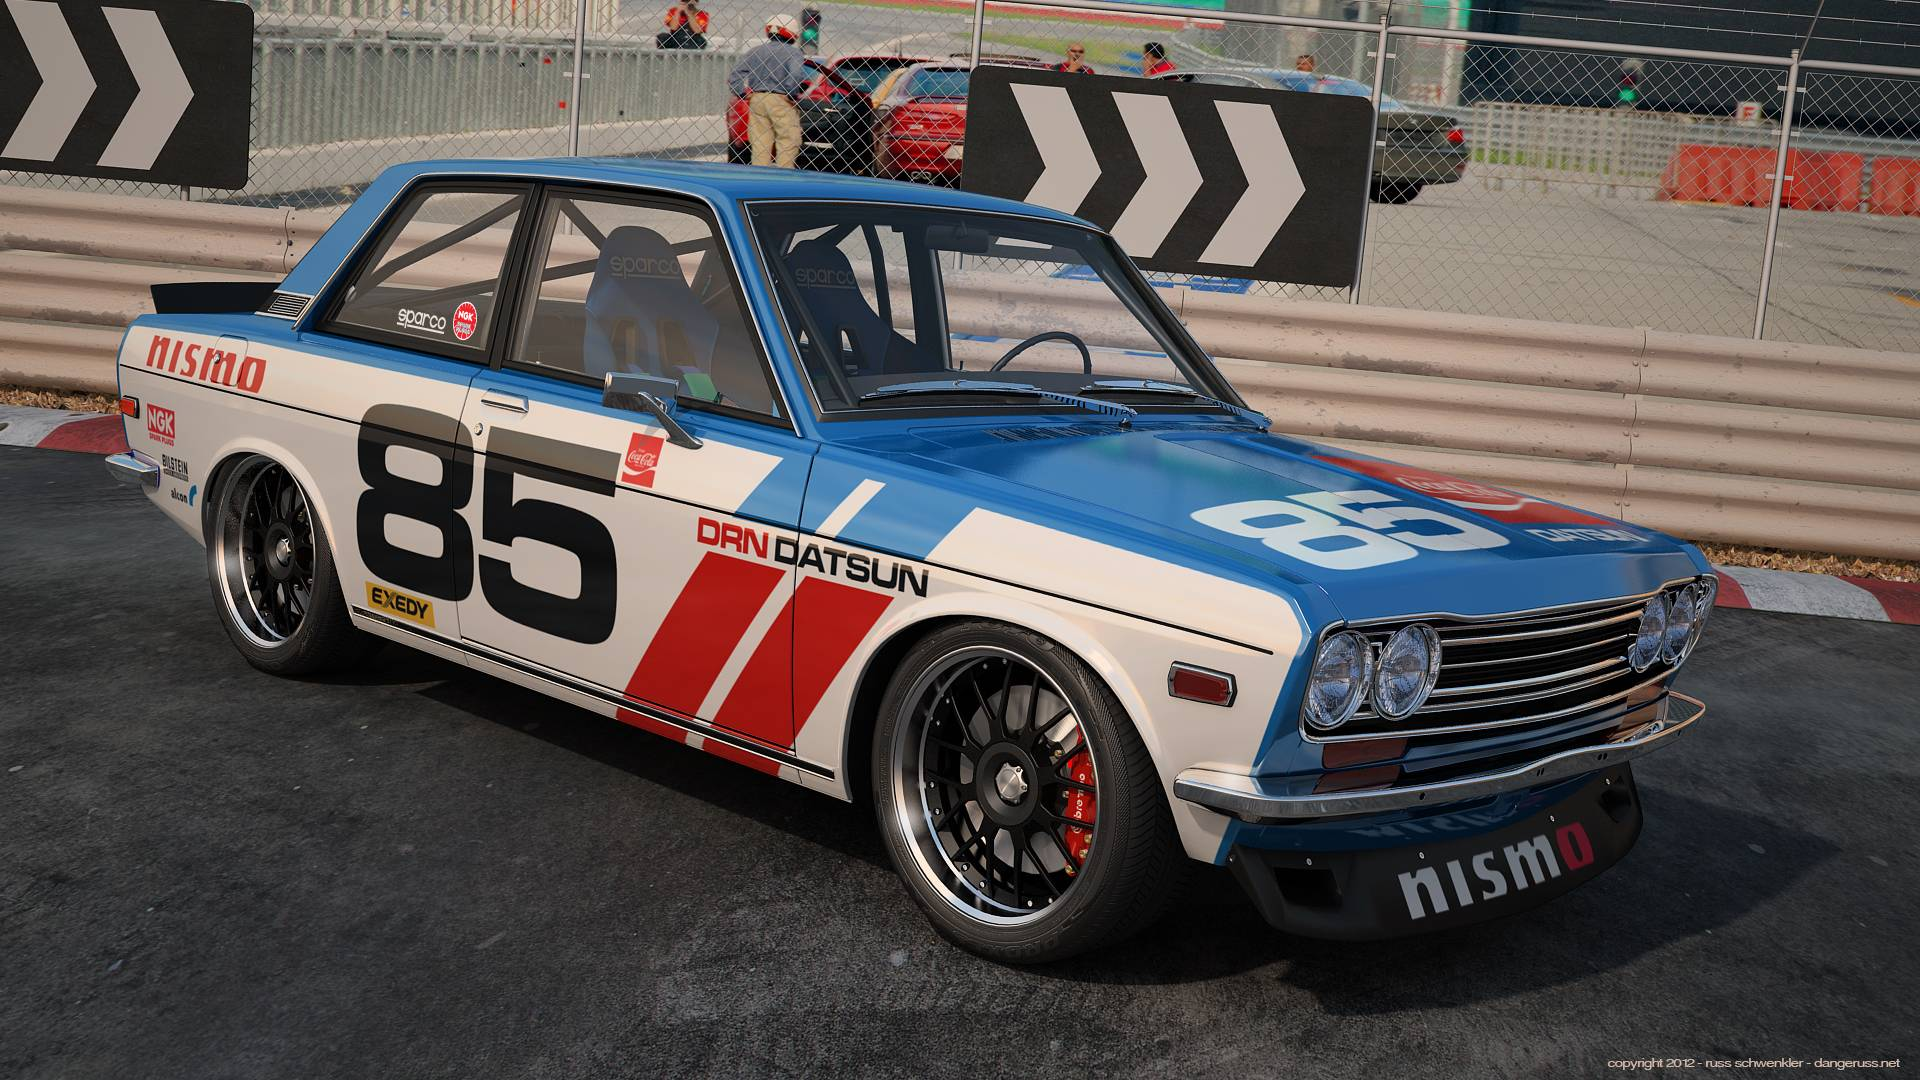 Datsun 510 Wallpapers 1920x1080